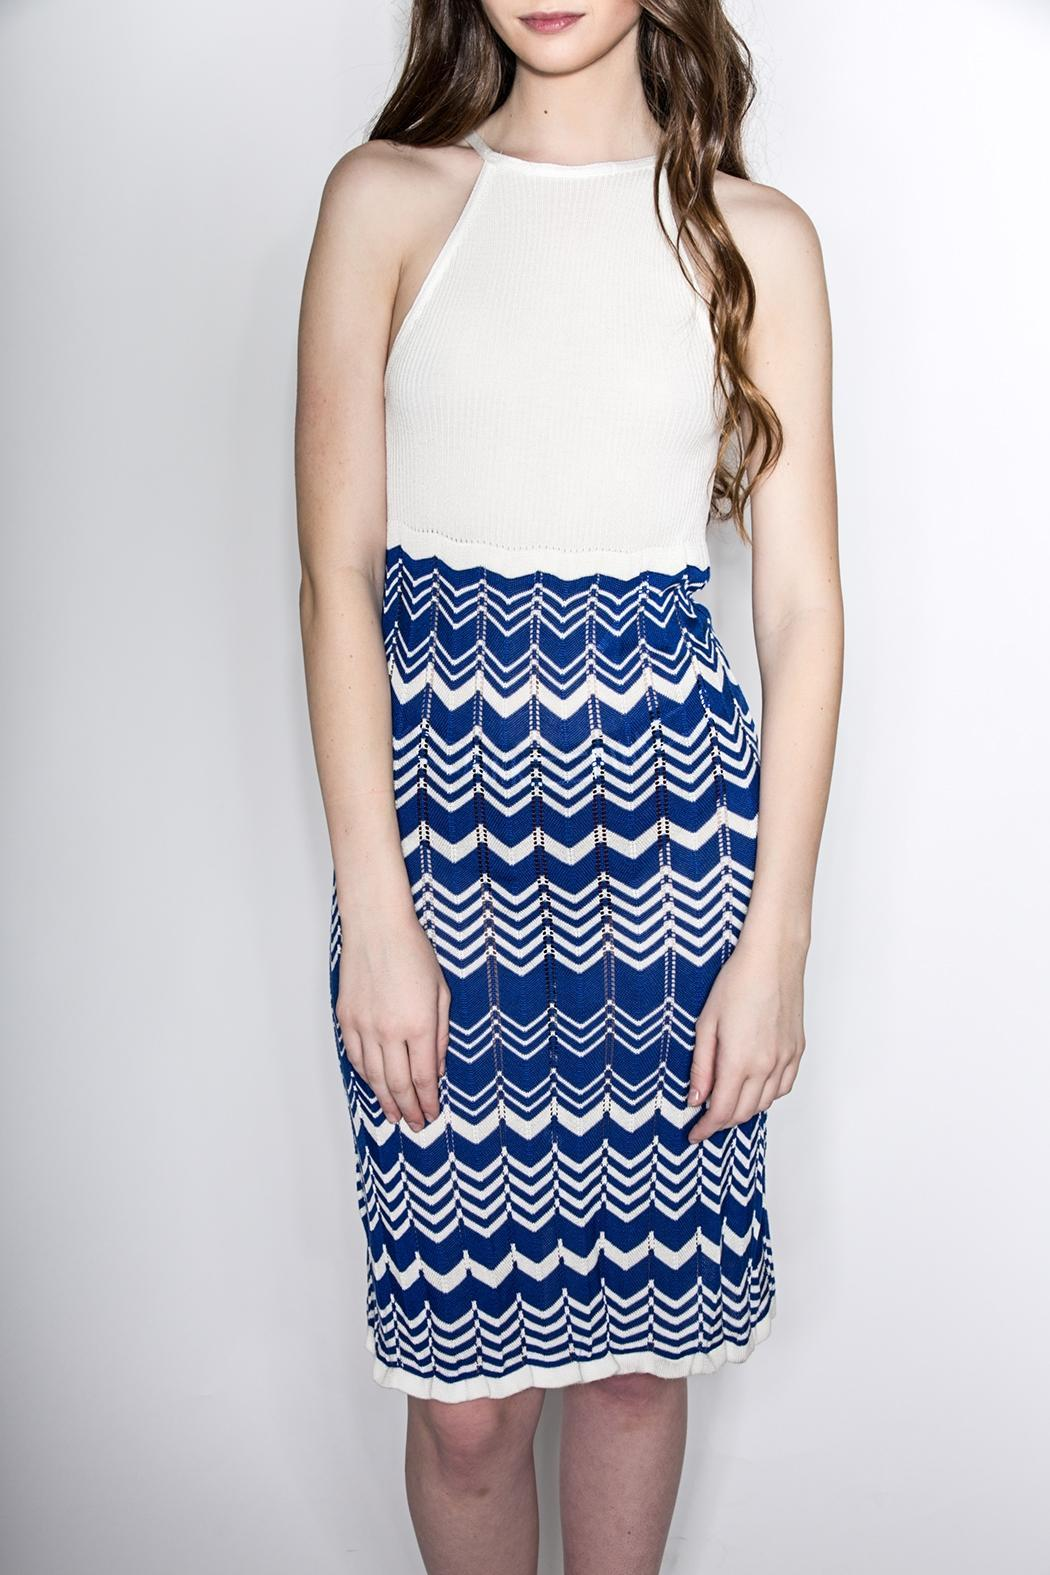 Dolce Vita Highneck Fitted Dress - Main Image